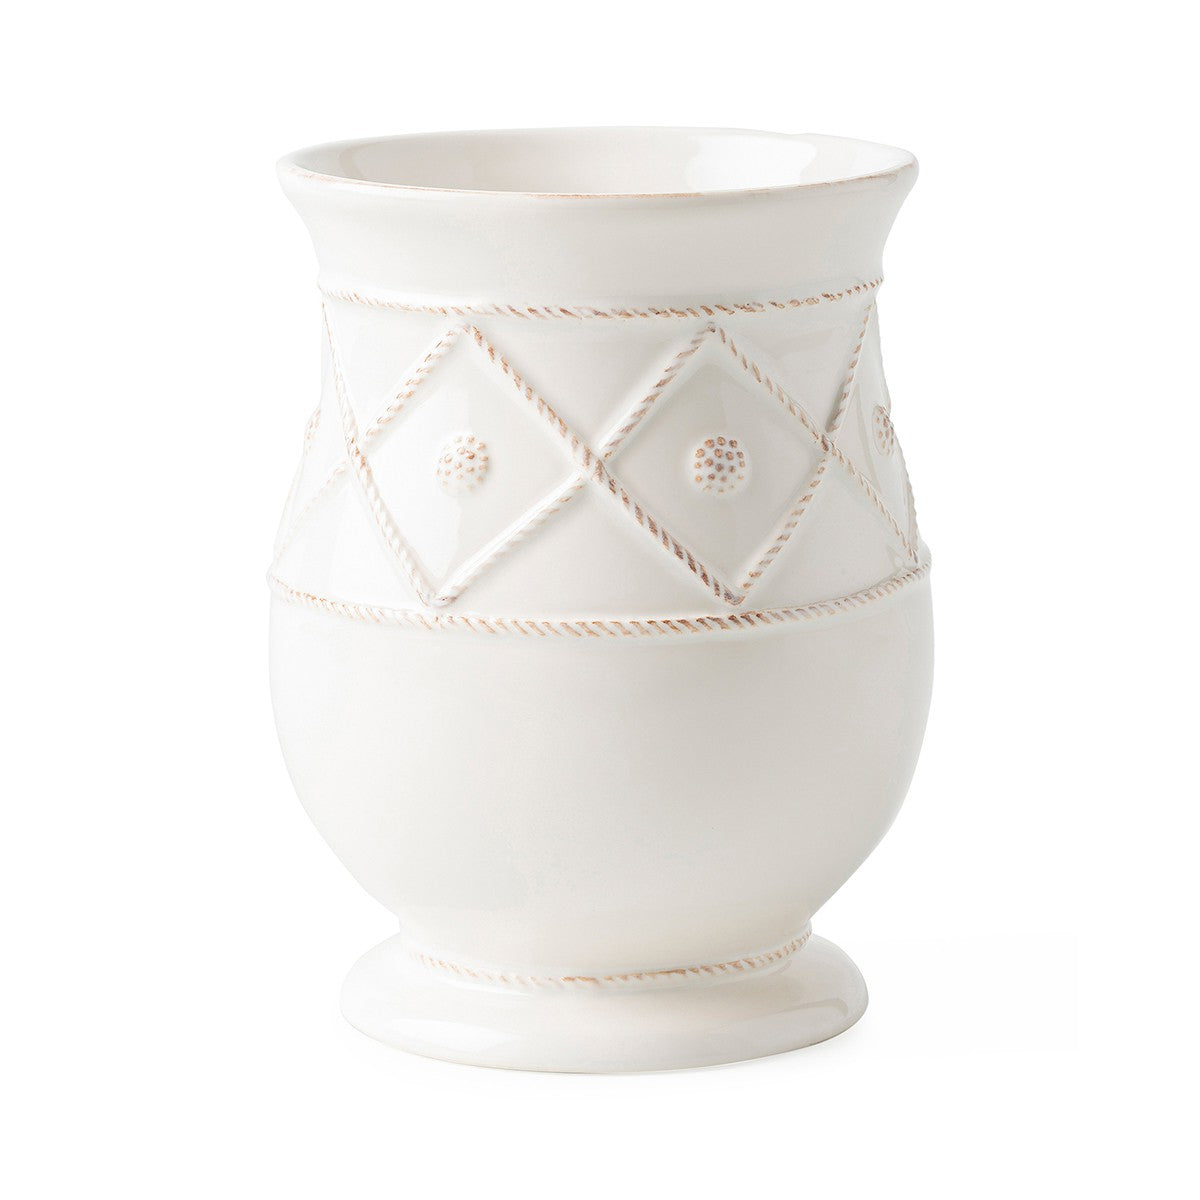 Berry & Thread Whitewash Utensil Crock